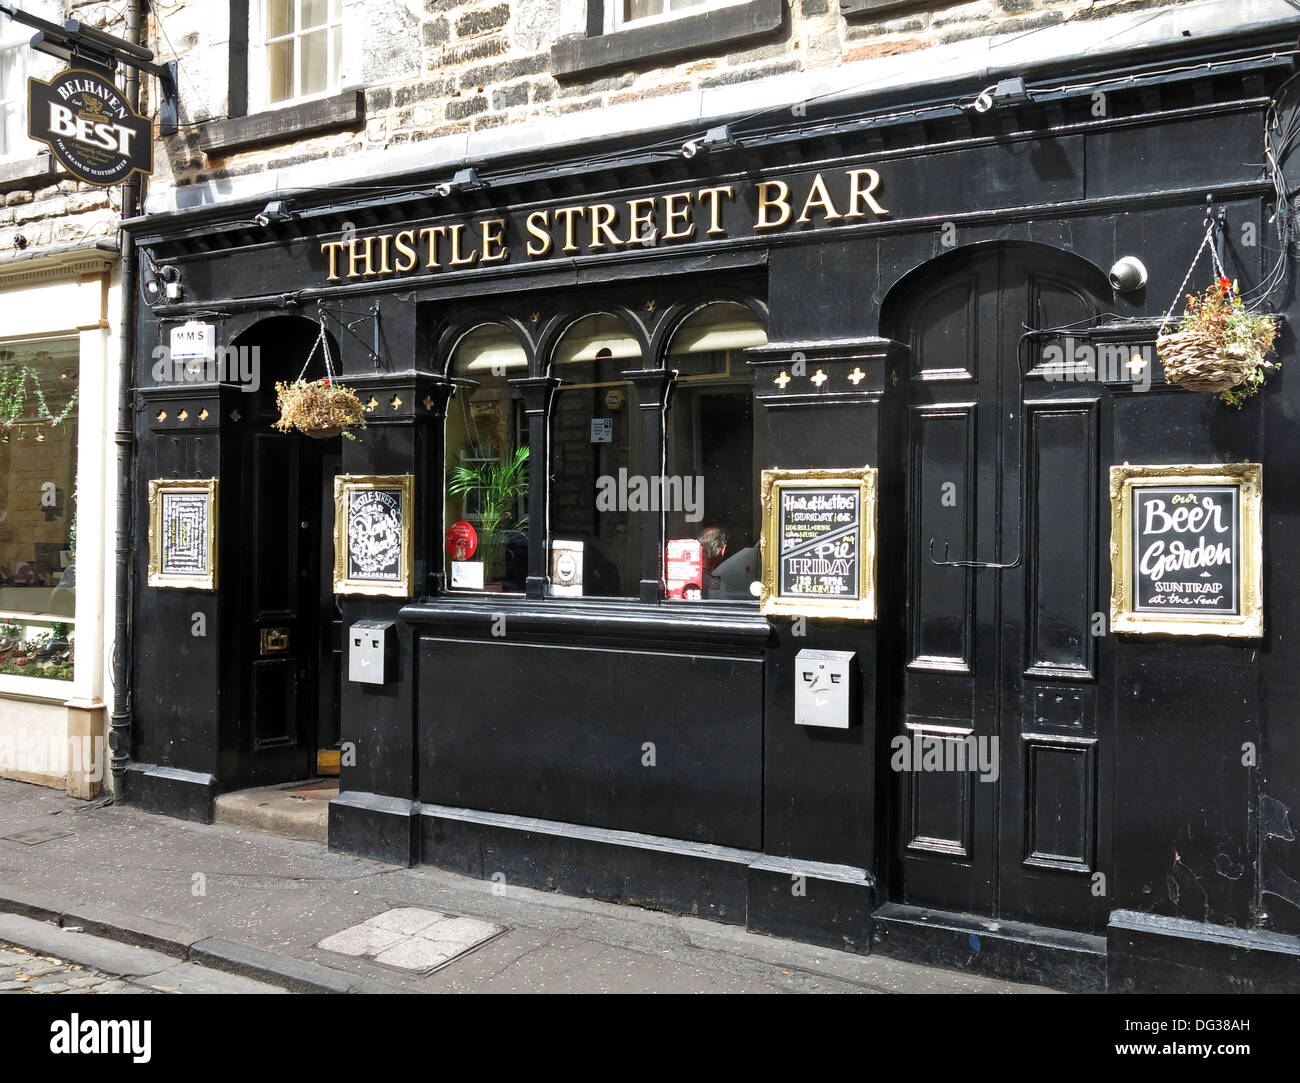 Thistle st bar in Edinburgh - Traditional city centre Scottish Bellhaven brewery pub Scotland, UK - Stock Image